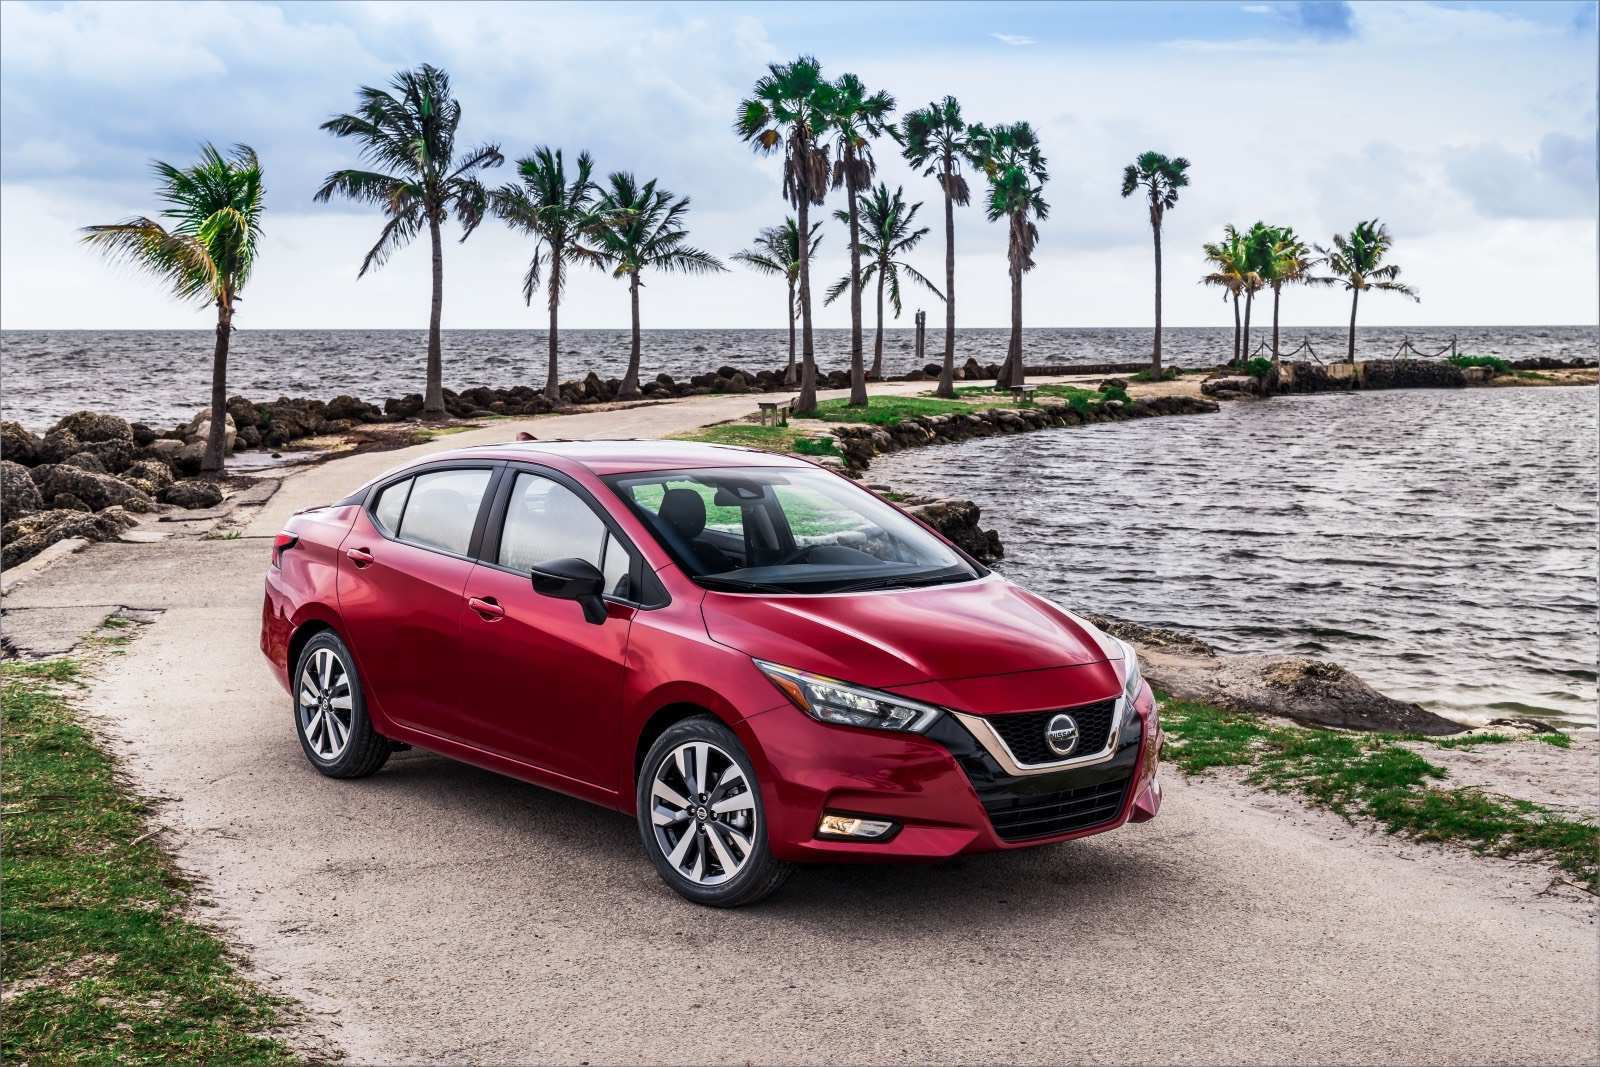 67 The Best 2020 Nissan Versa Reviews